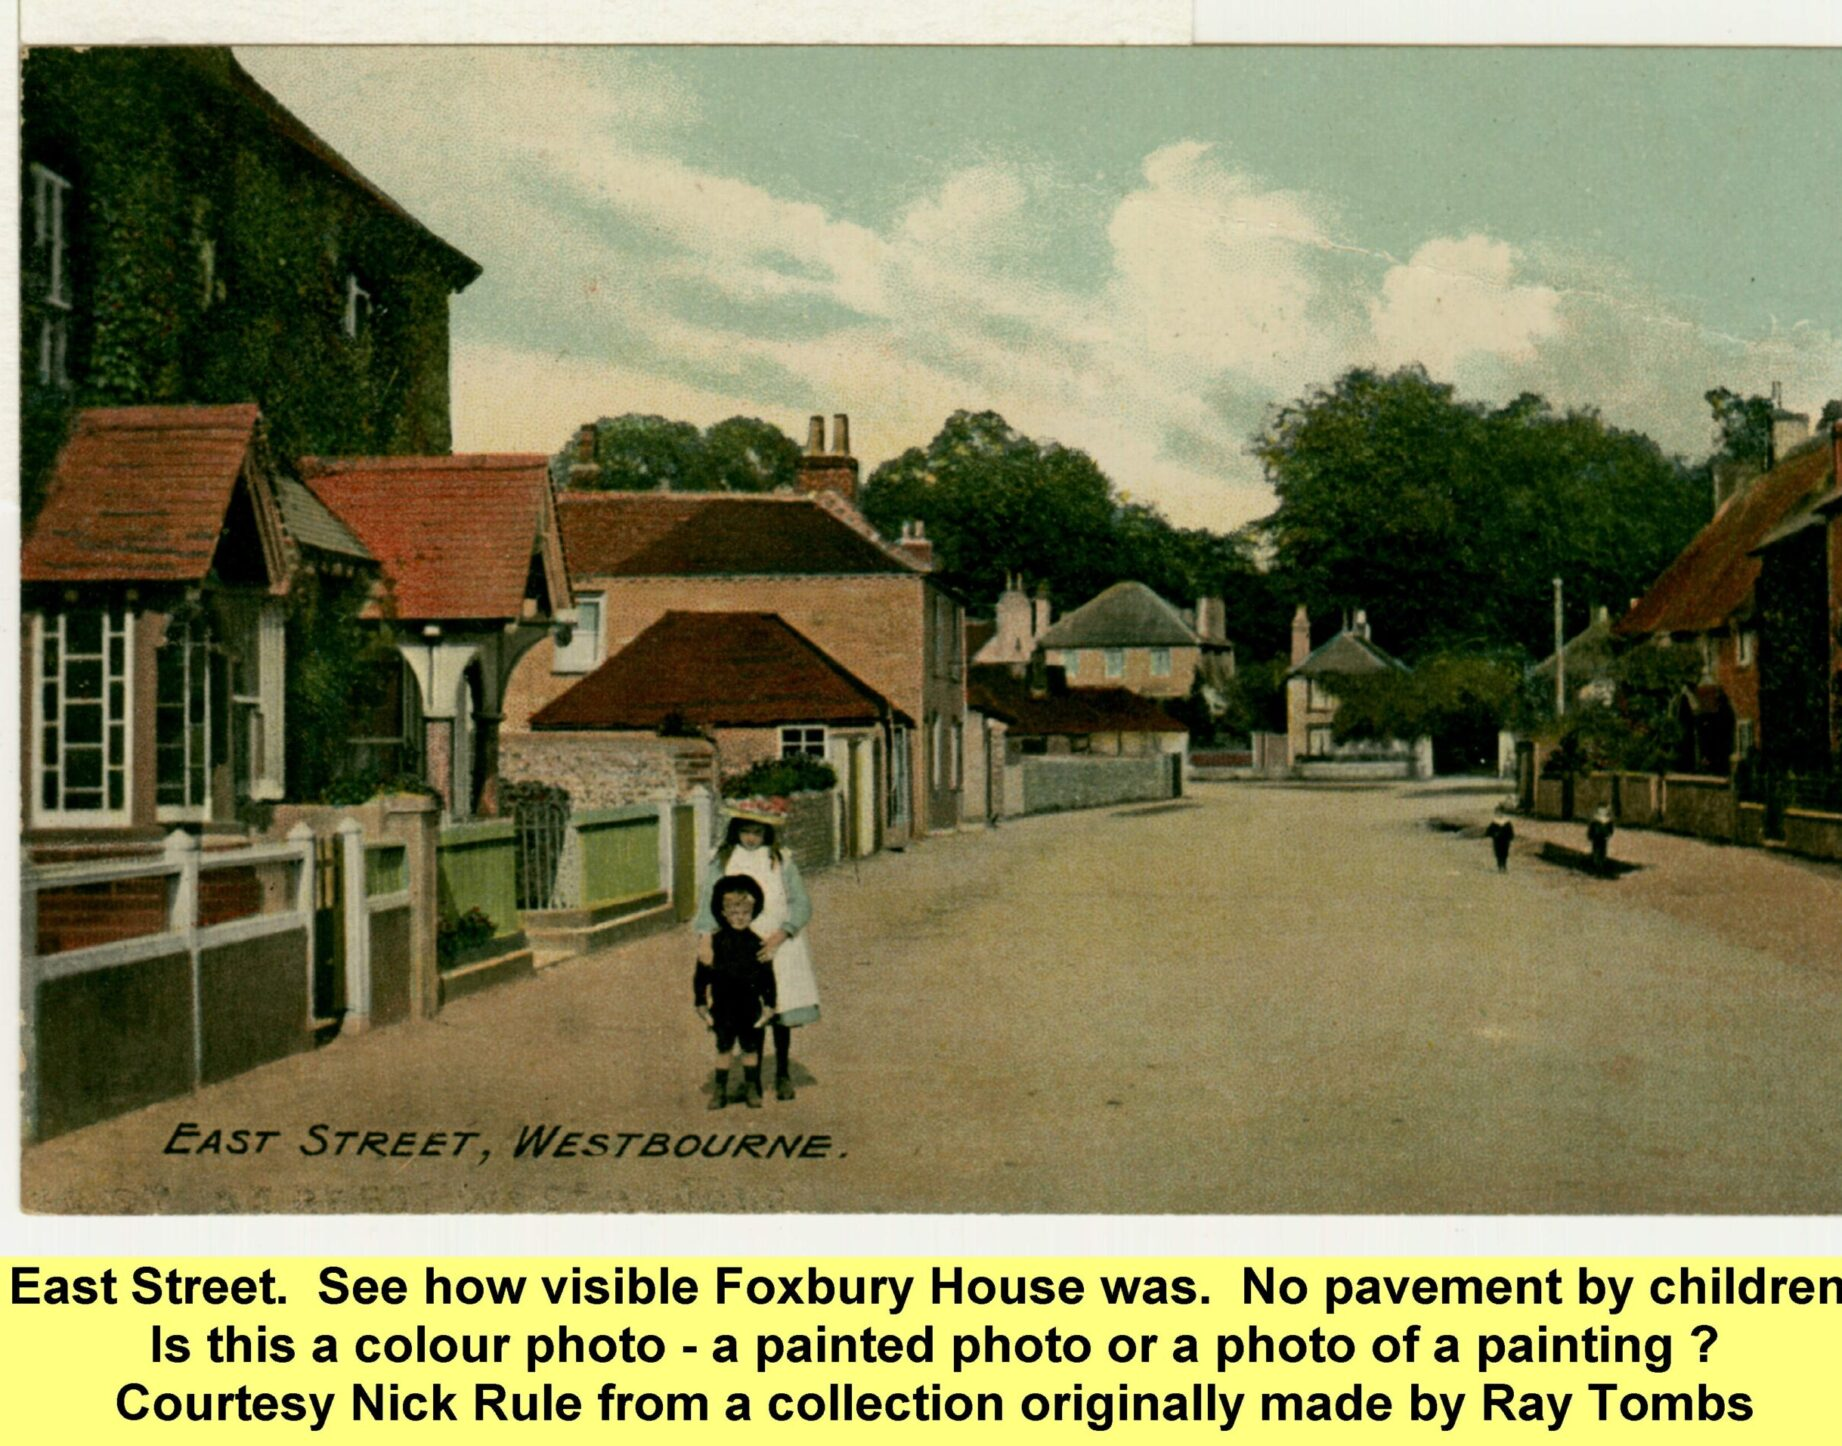 WESTBOURNE HISTORY PHOTO, EAST STREET,Foxbury, painting